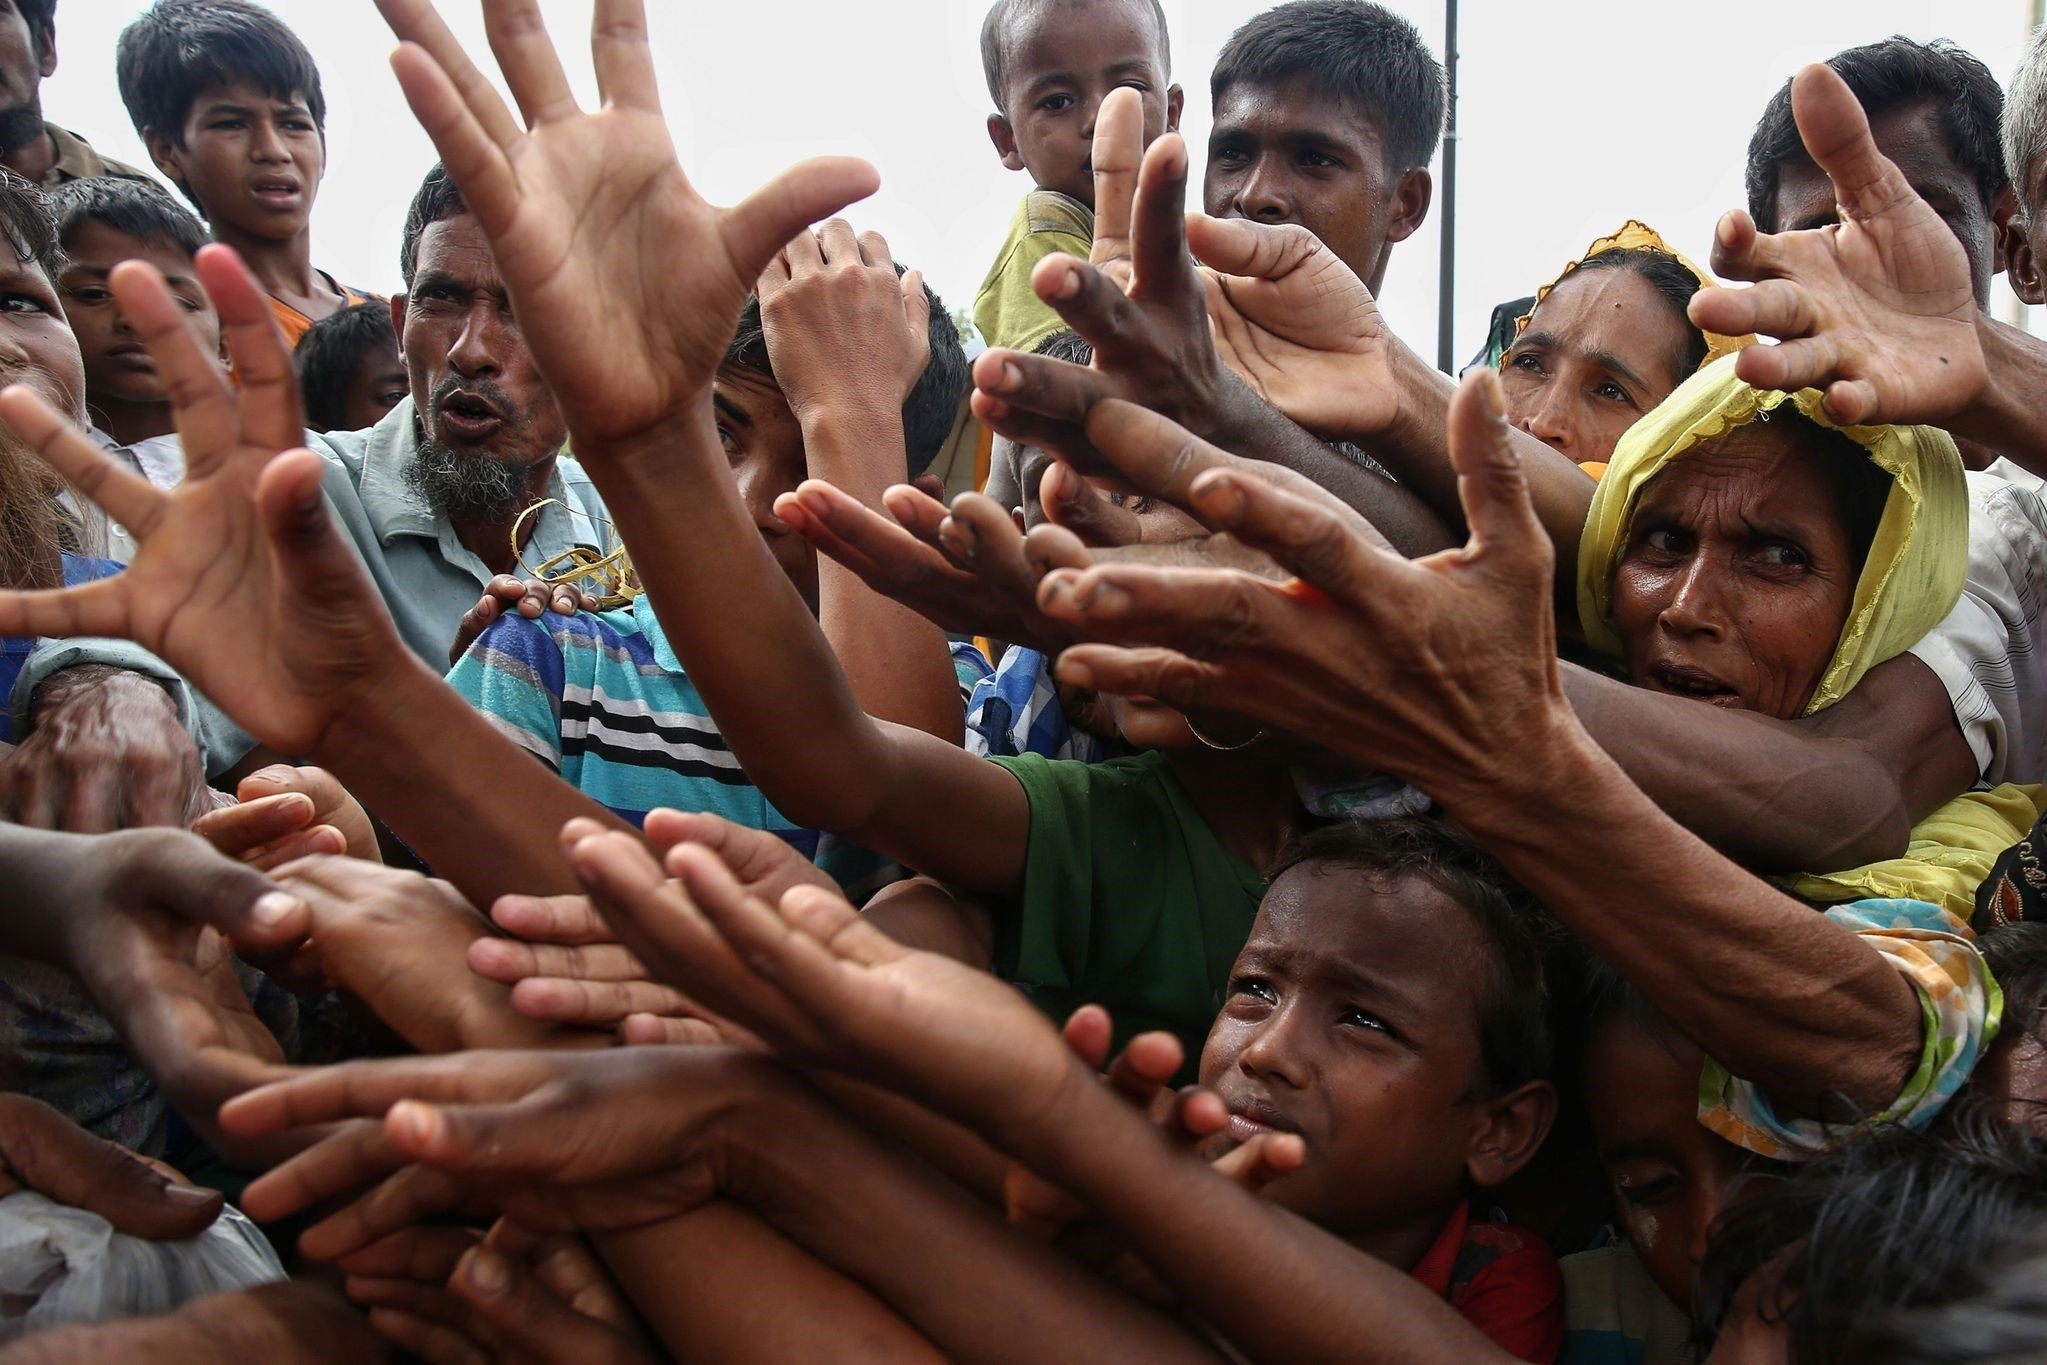 This August 30, 2017 photo shows Rohingya refugees reaching for food aid at Kutupalong refugee camp in Ukhiya near the Bangladesh-Myanmar border. (AFP Photo)